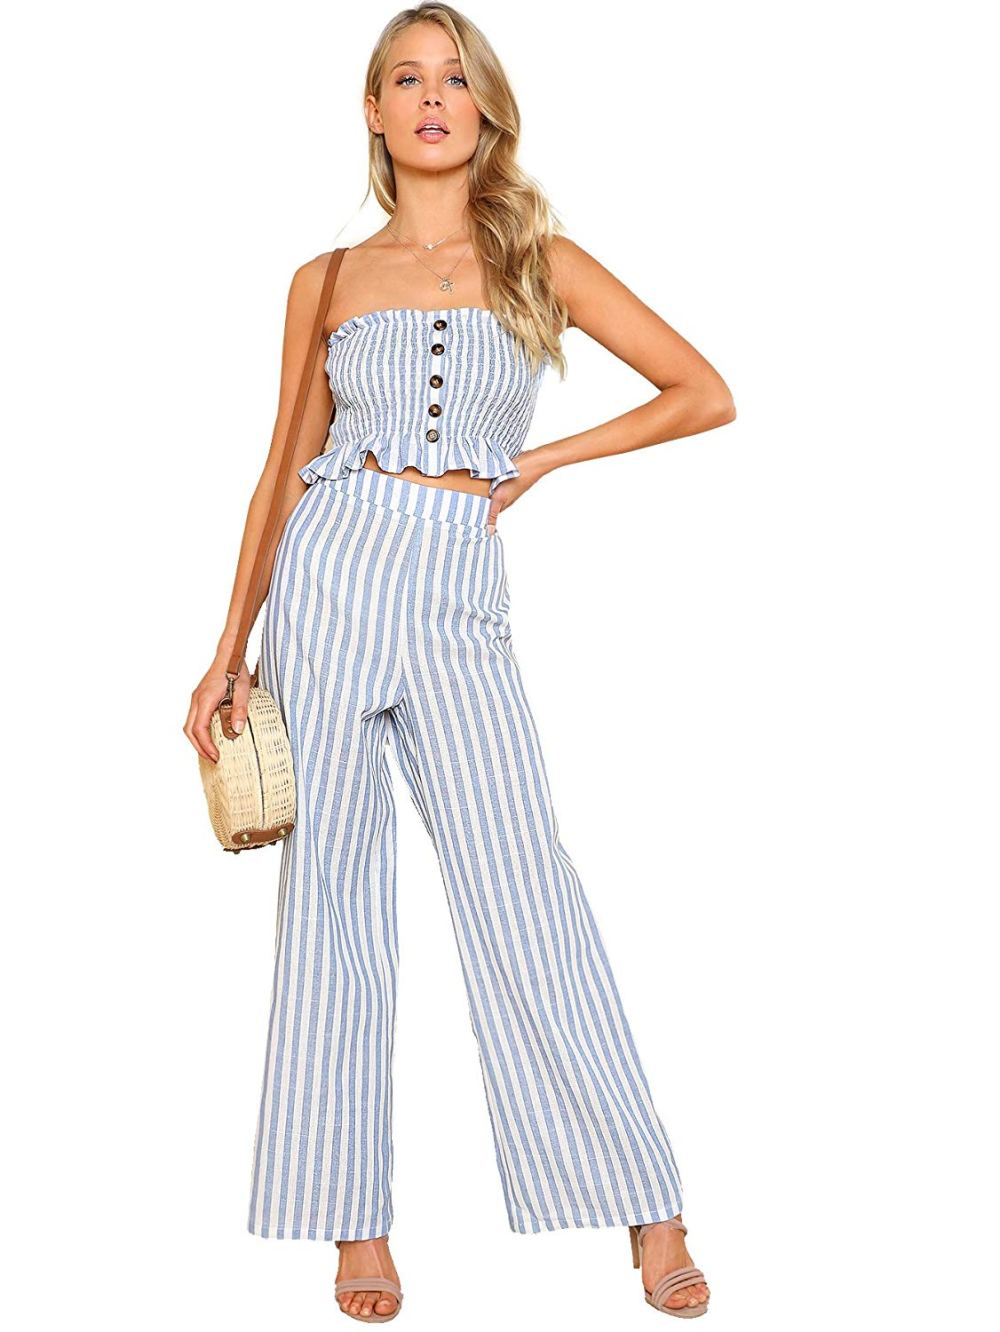 striped tube top and tie-up pants set. Casual Womens Fashion and Womens Cool Trending Clothes, Dresses. #womensfashion #womensdress #summeroutfit #casualoutfit